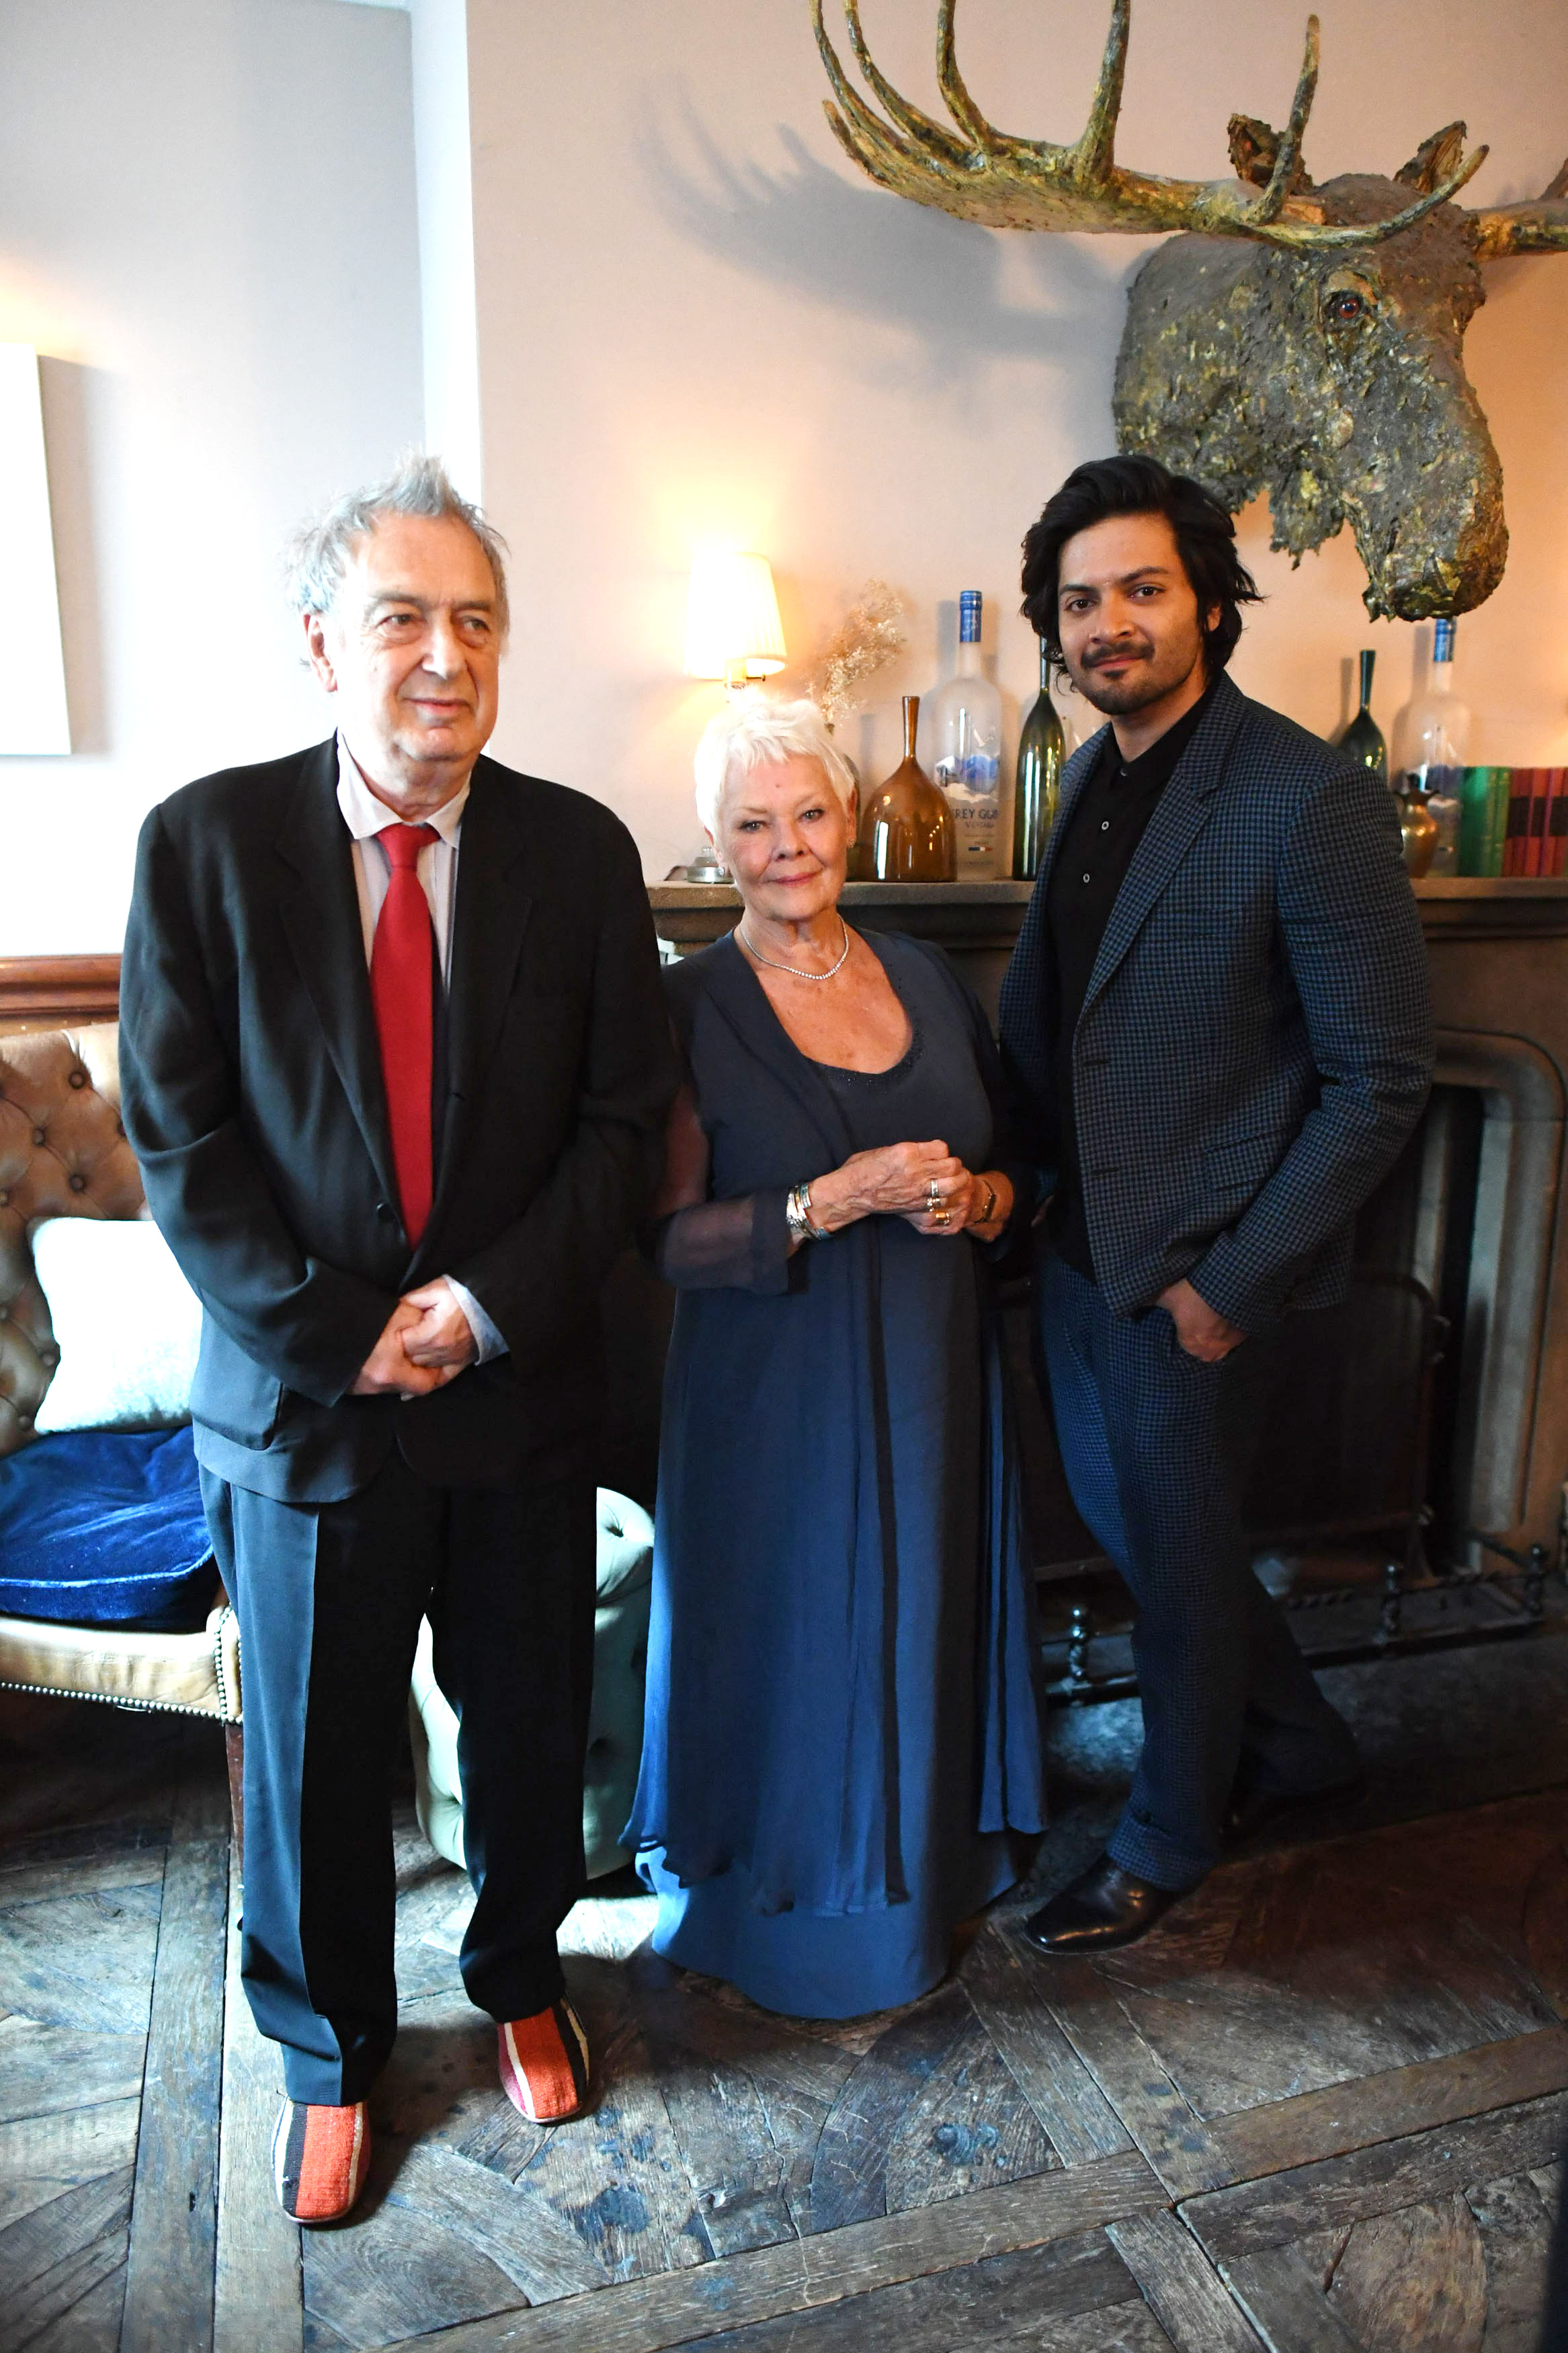 Stephen Frears Judi Dench and Ali Fazal